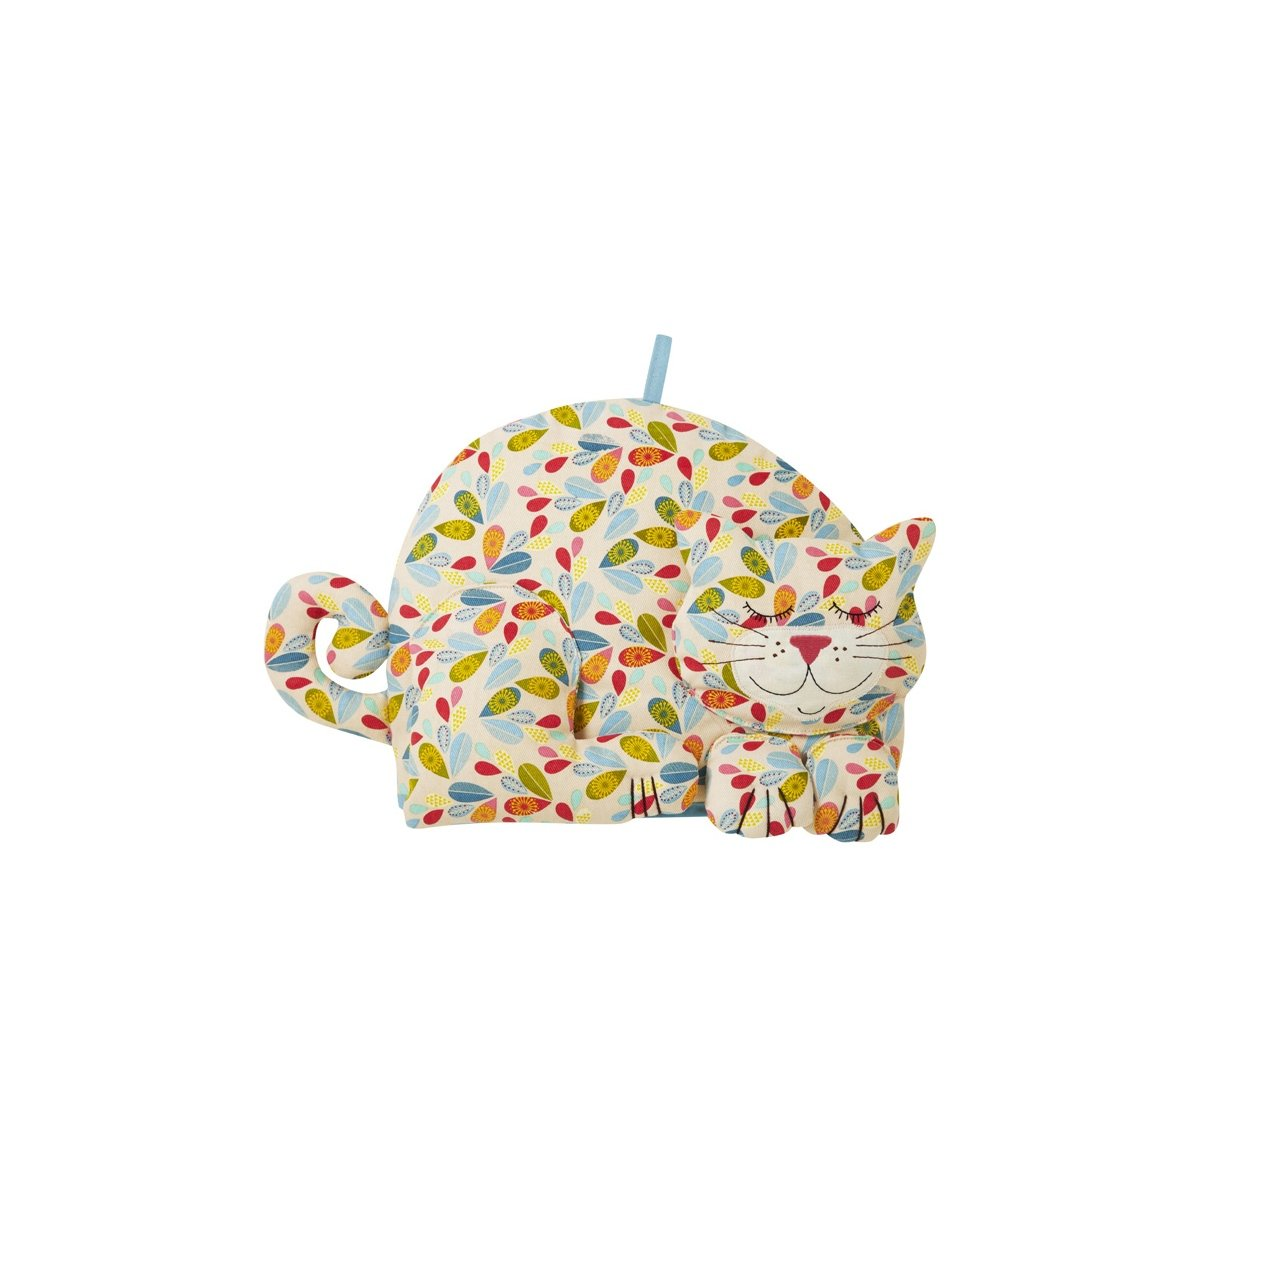 Ulster Weavers Cat Shaped Decorative Tea Cosy